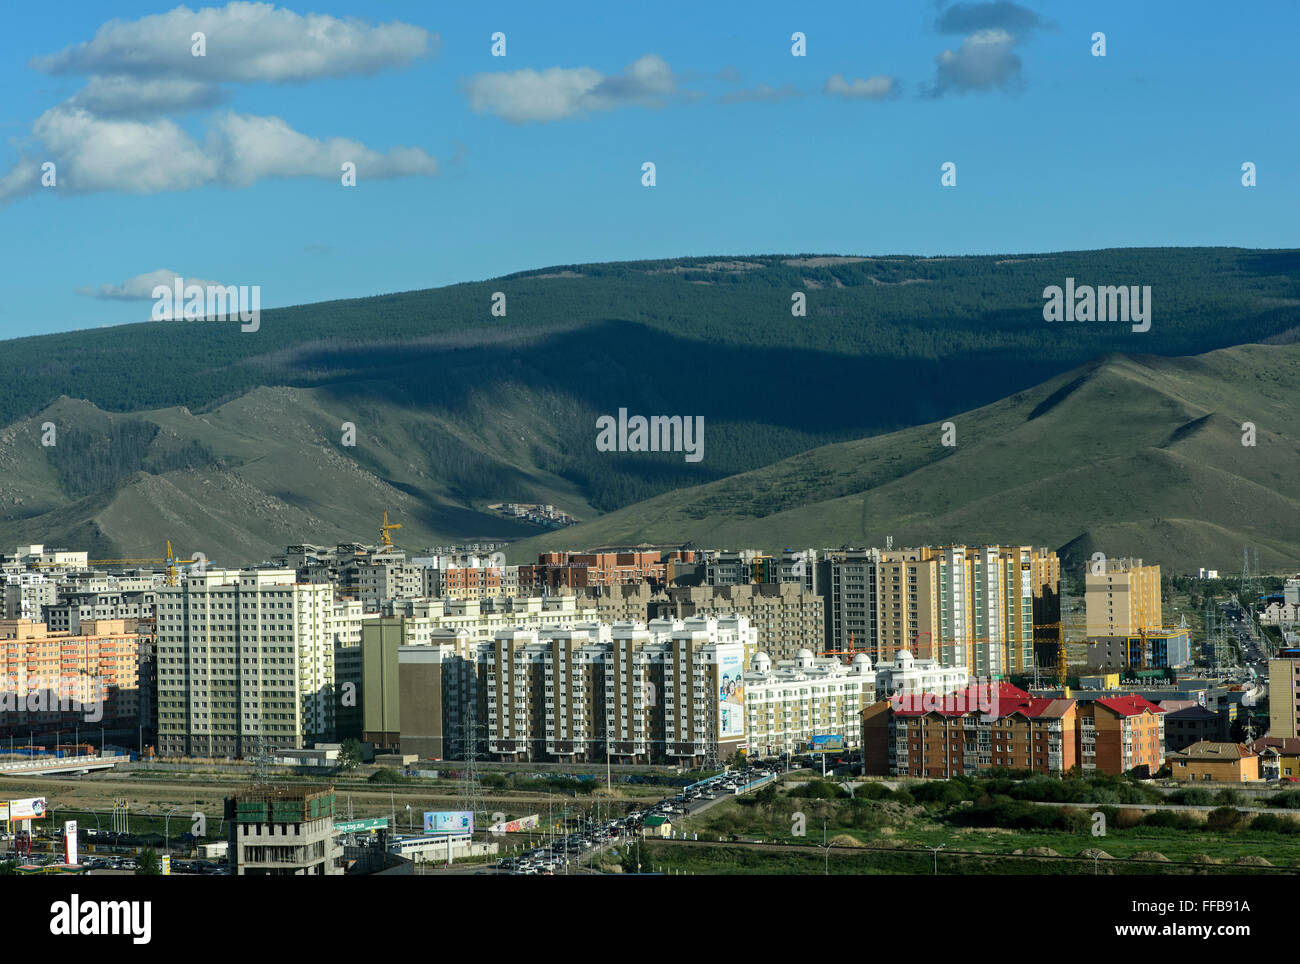 Newly built residential area, Ulan Bator, Mongolia - Stock Image